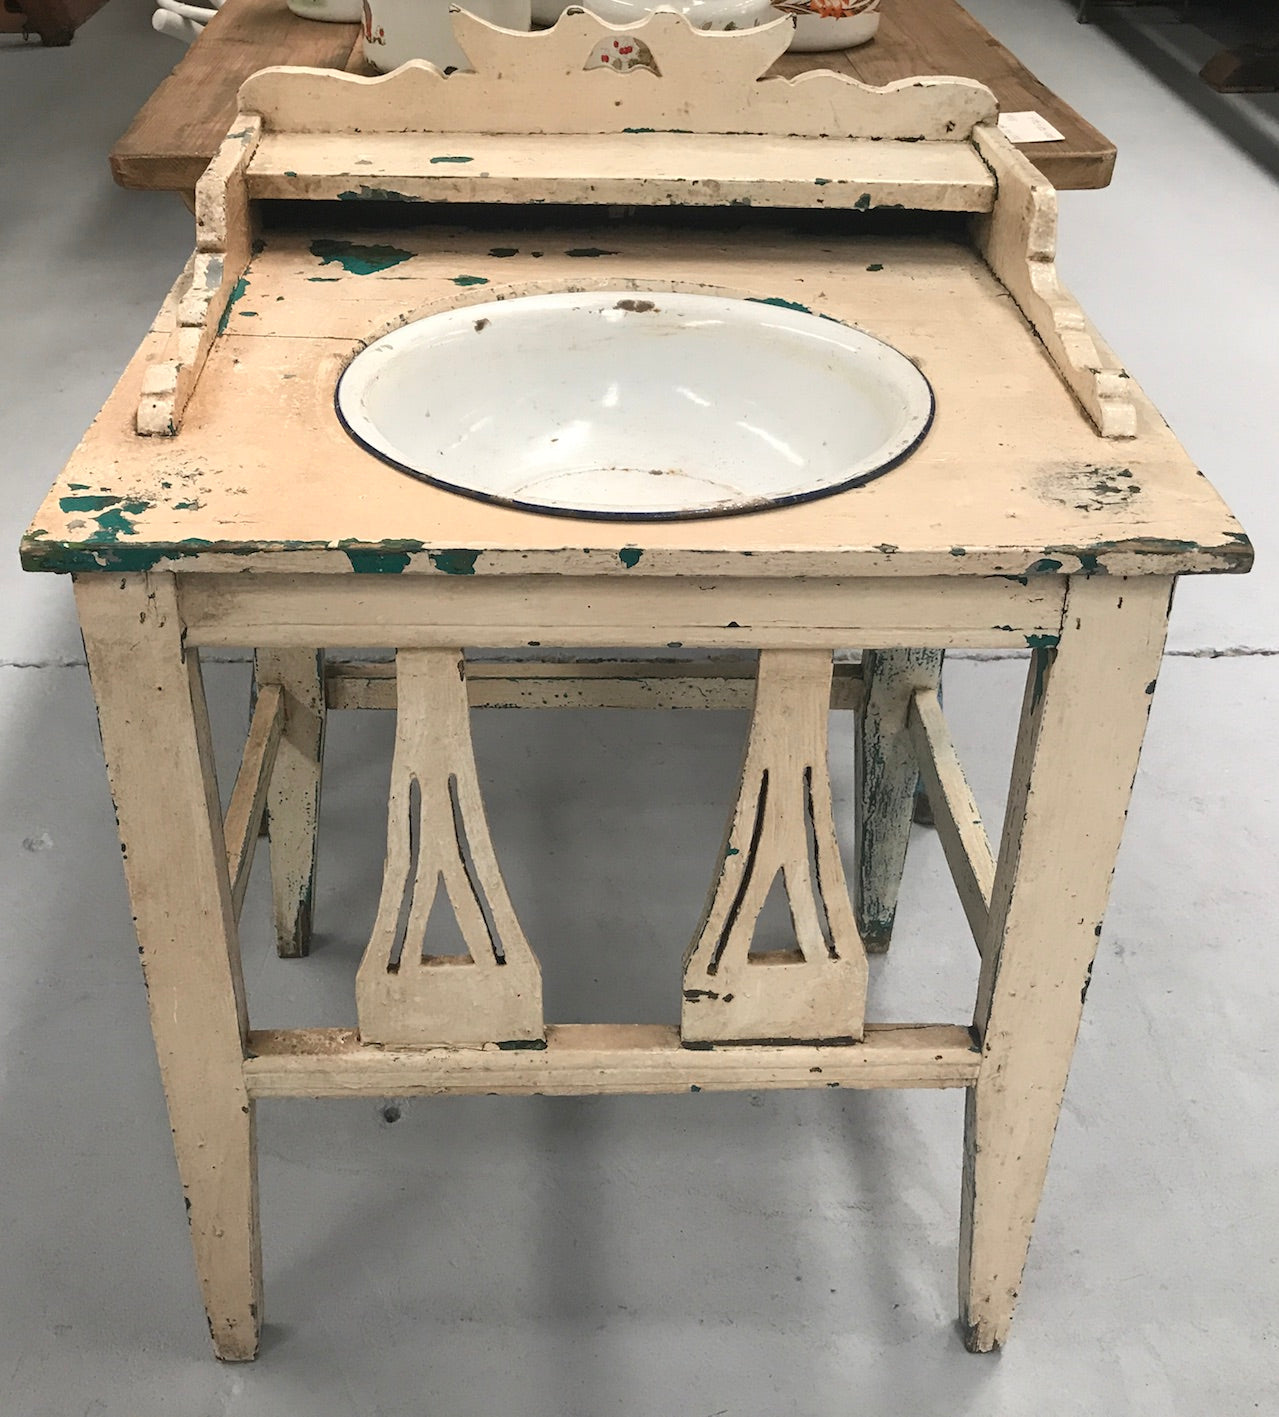 Vintage industrial European wooden wash stand with enamel bowl #2054